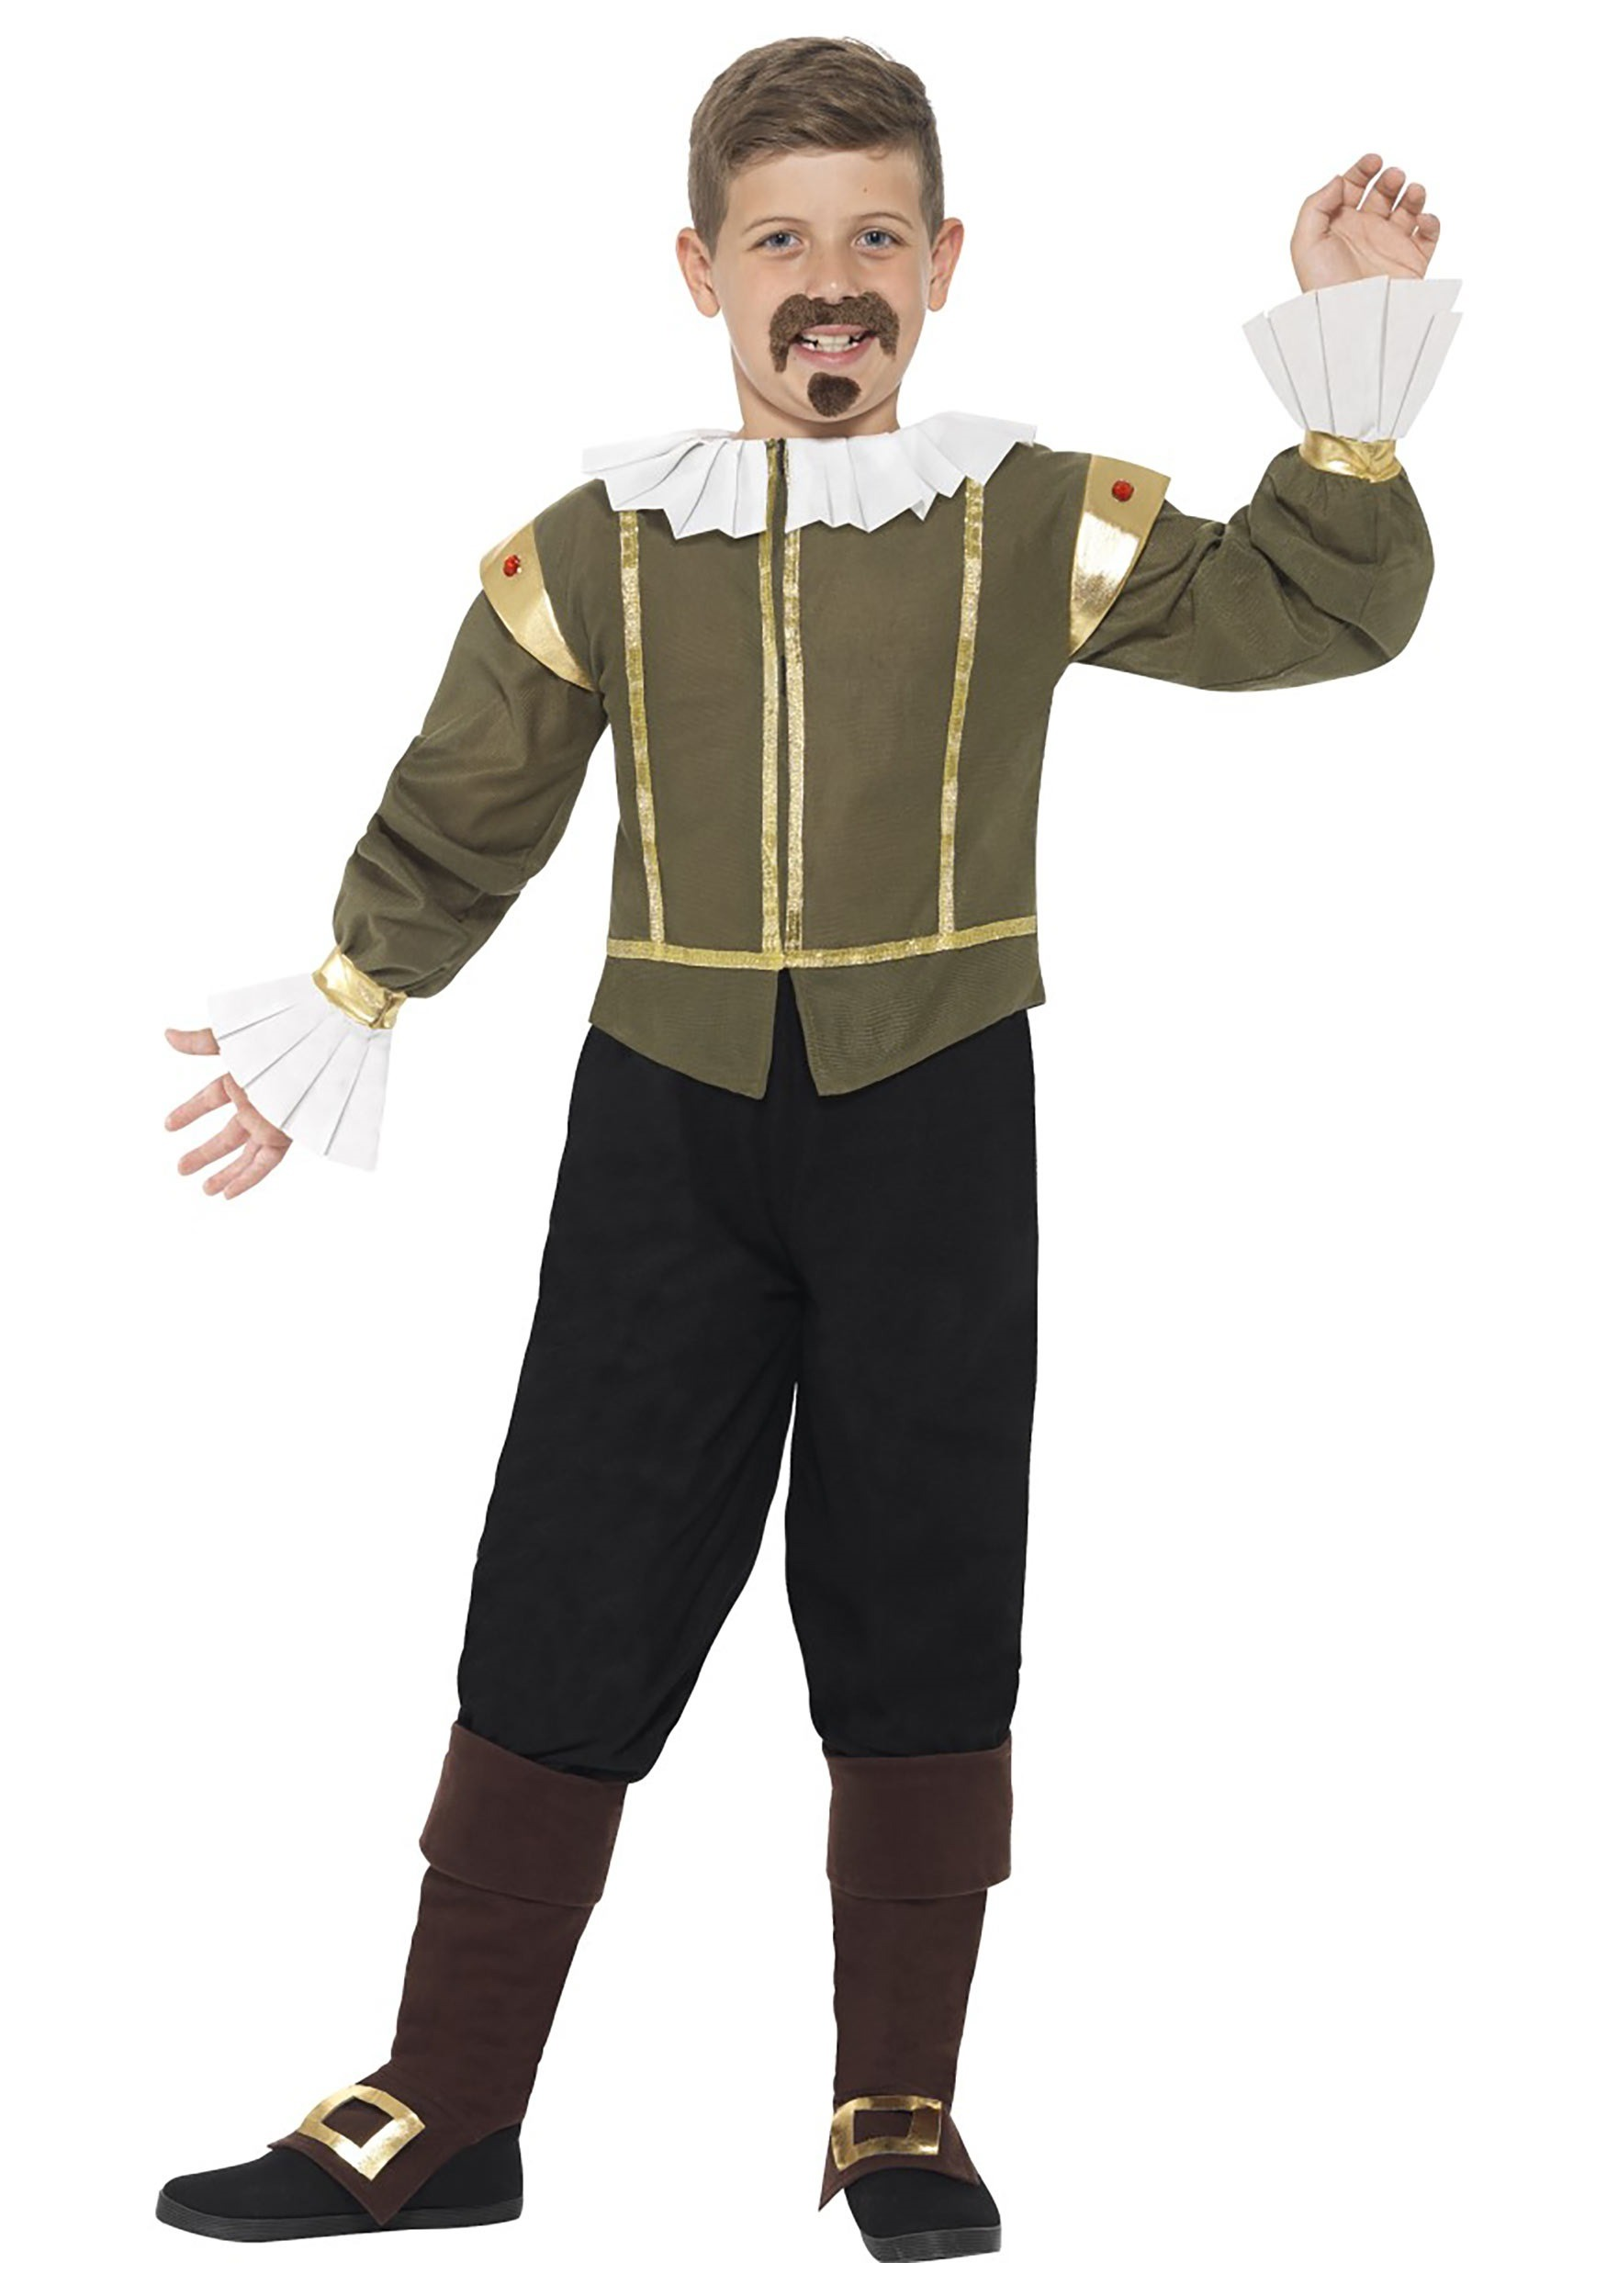 elizabethan costumes Halloween costumes for adults and kids - we have what you need to make your costume ideas come to life at buycostumescom shop today to find unique costume.